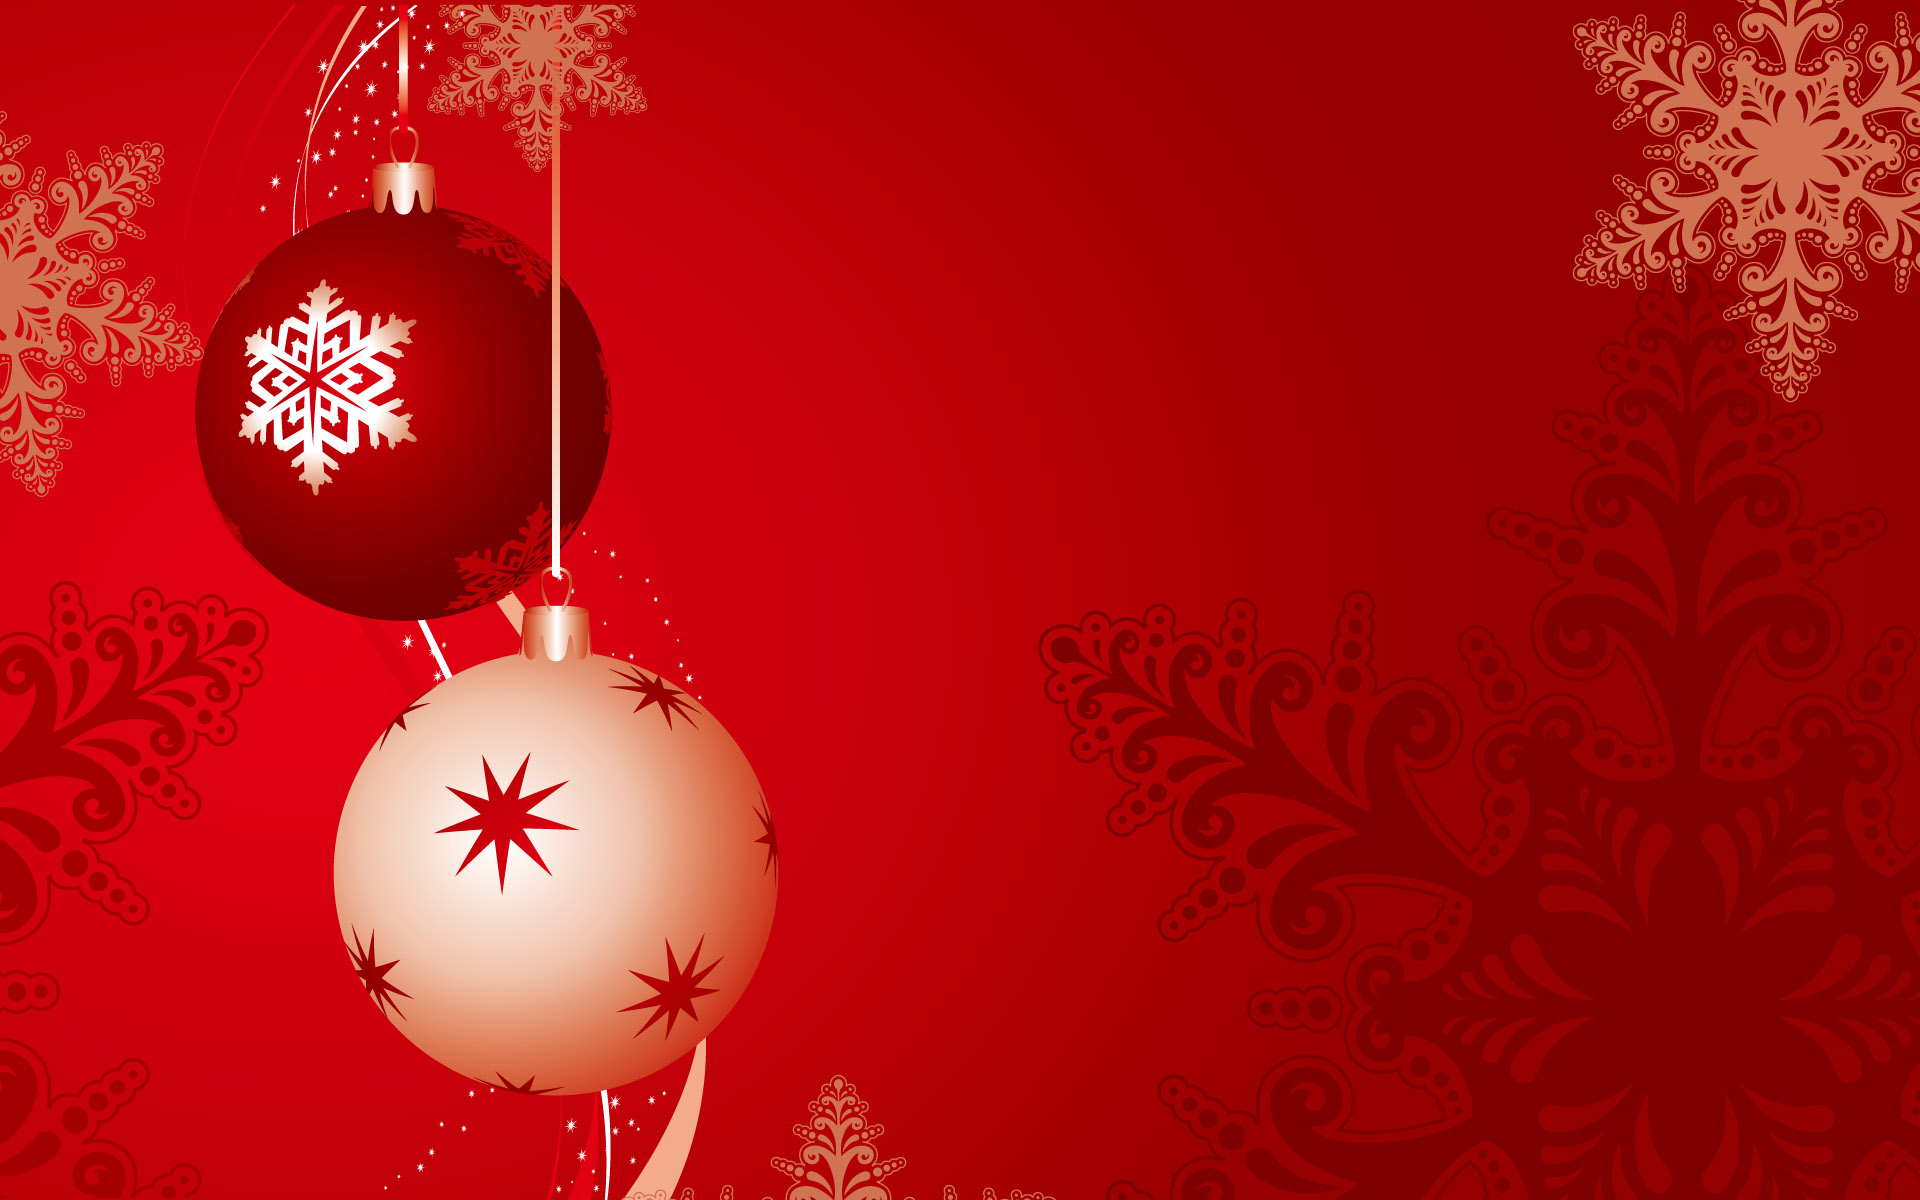 merry christmas wallpapers design